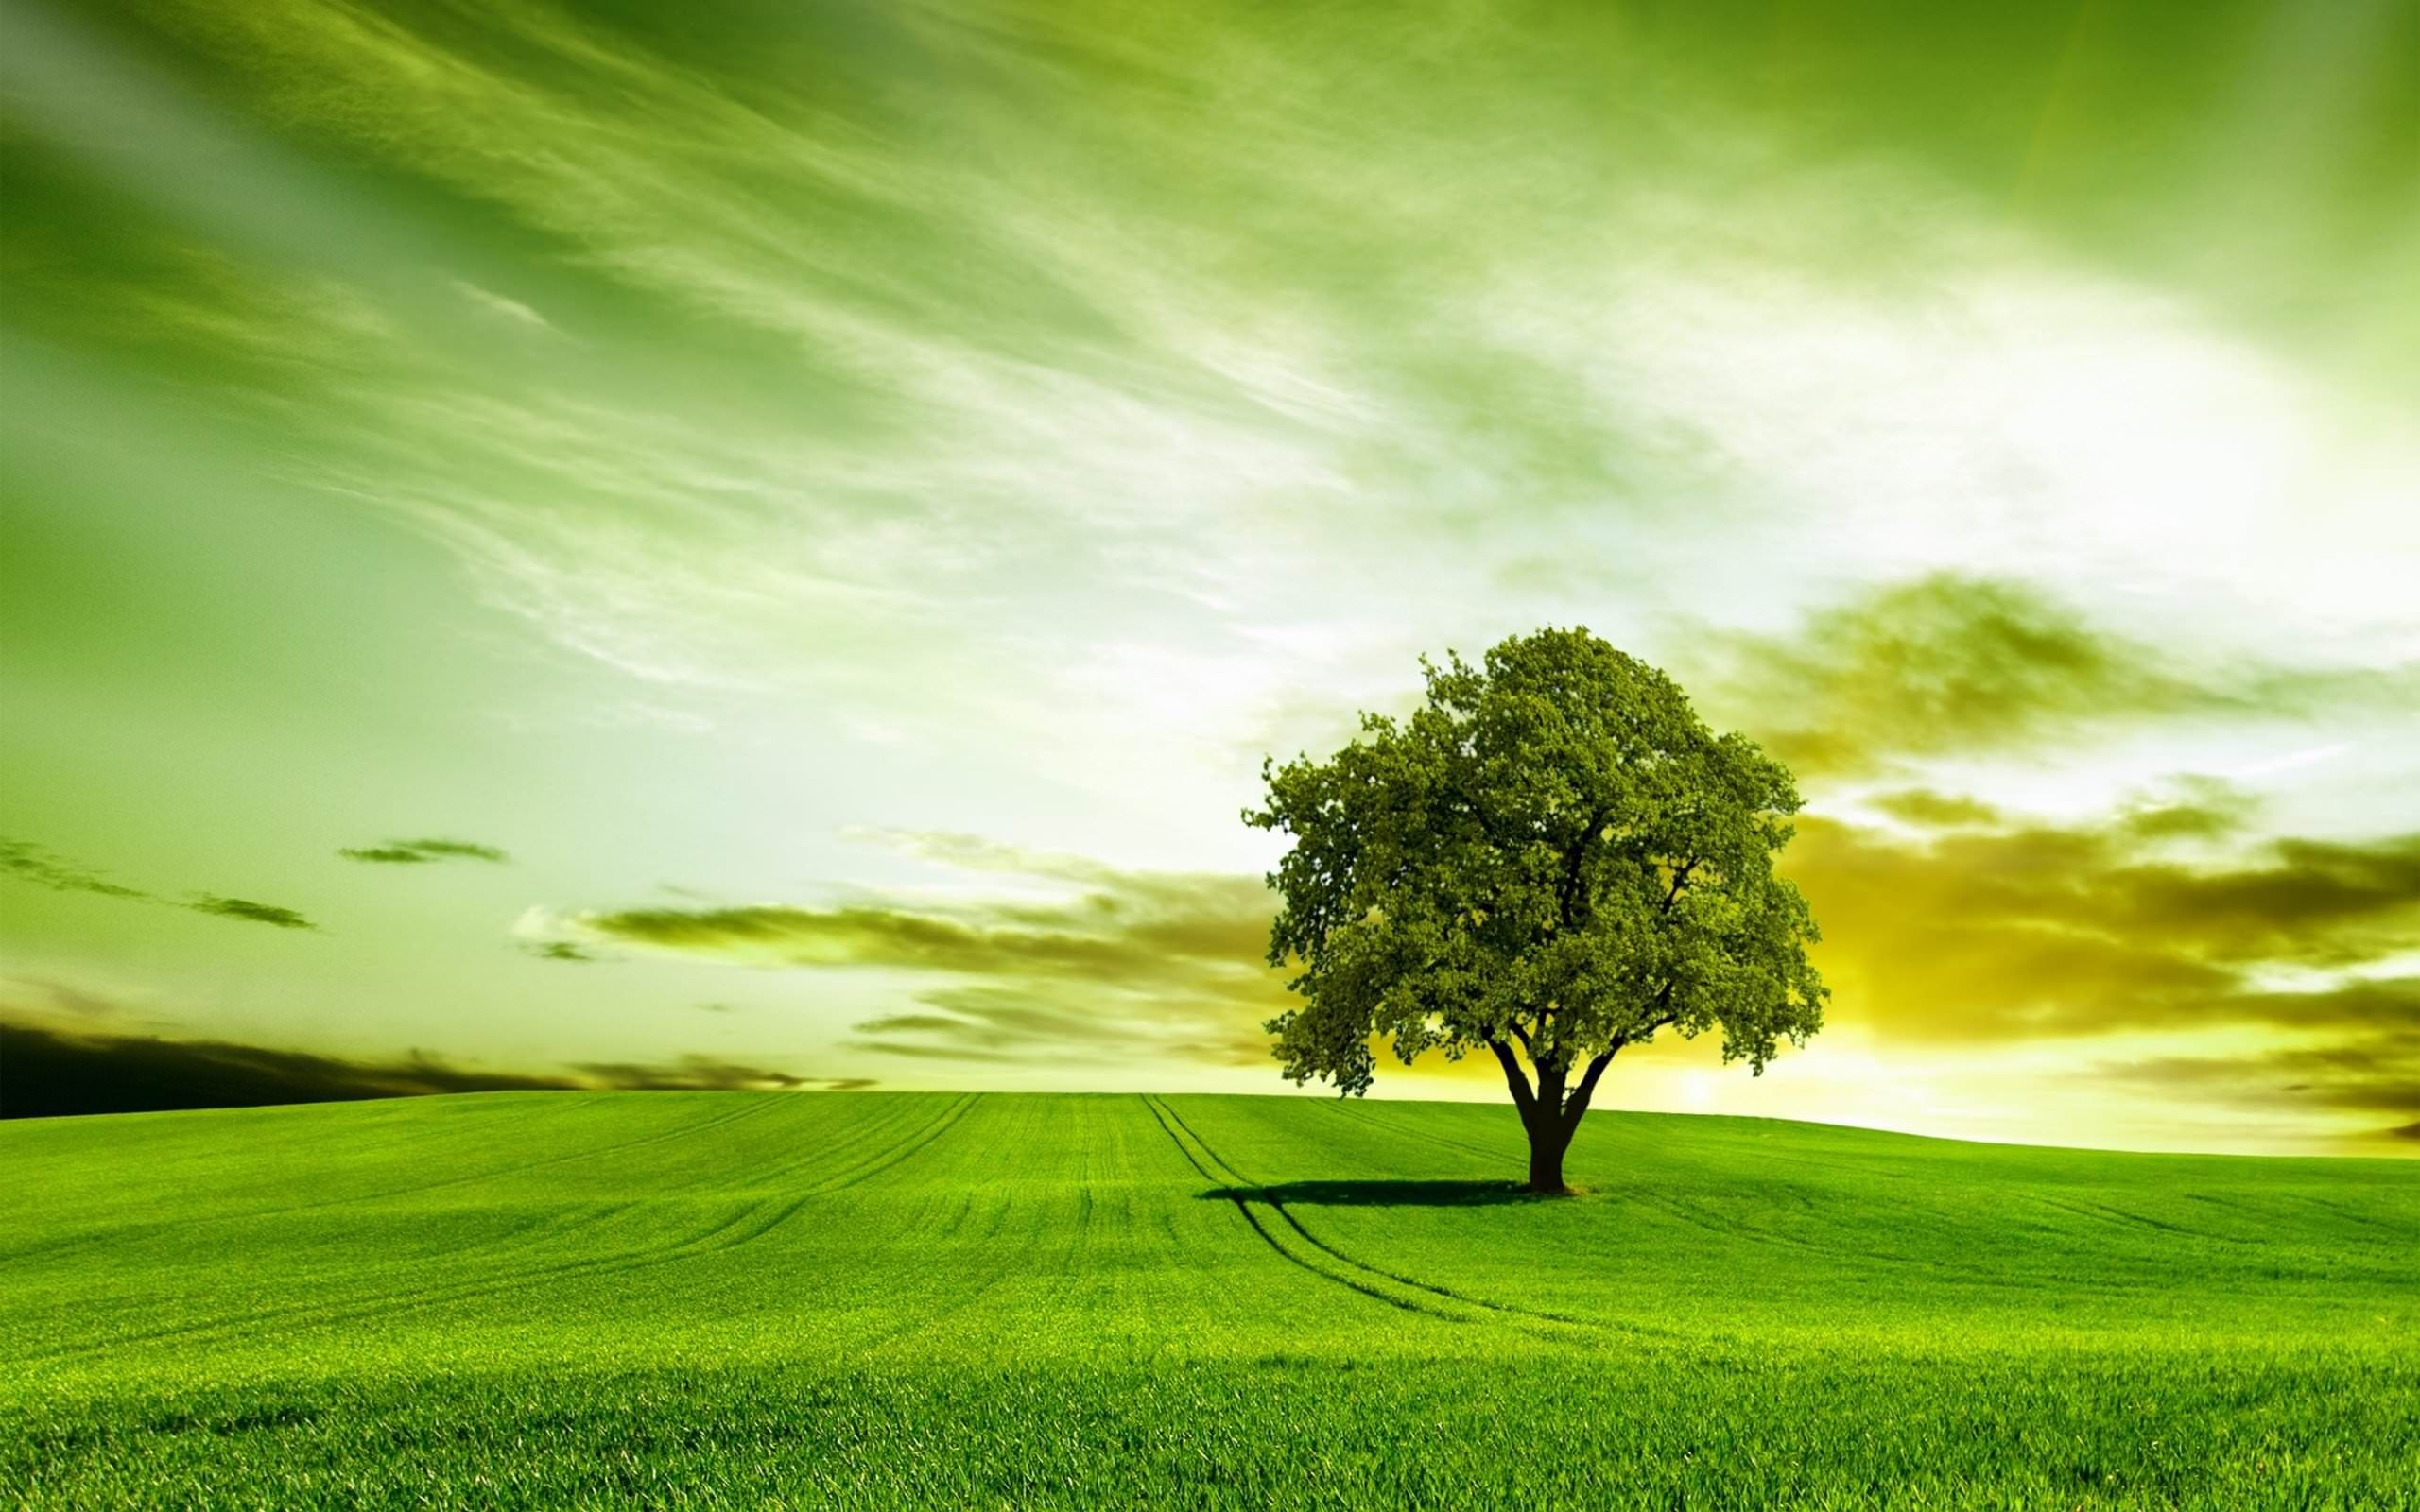 Widescreen Green Tree Hd New Images With Nature Trees Backgrounds High Quality Of Pc Green Nature Wallpaper Tree Hd Wallpaper Amazing Nature Photos